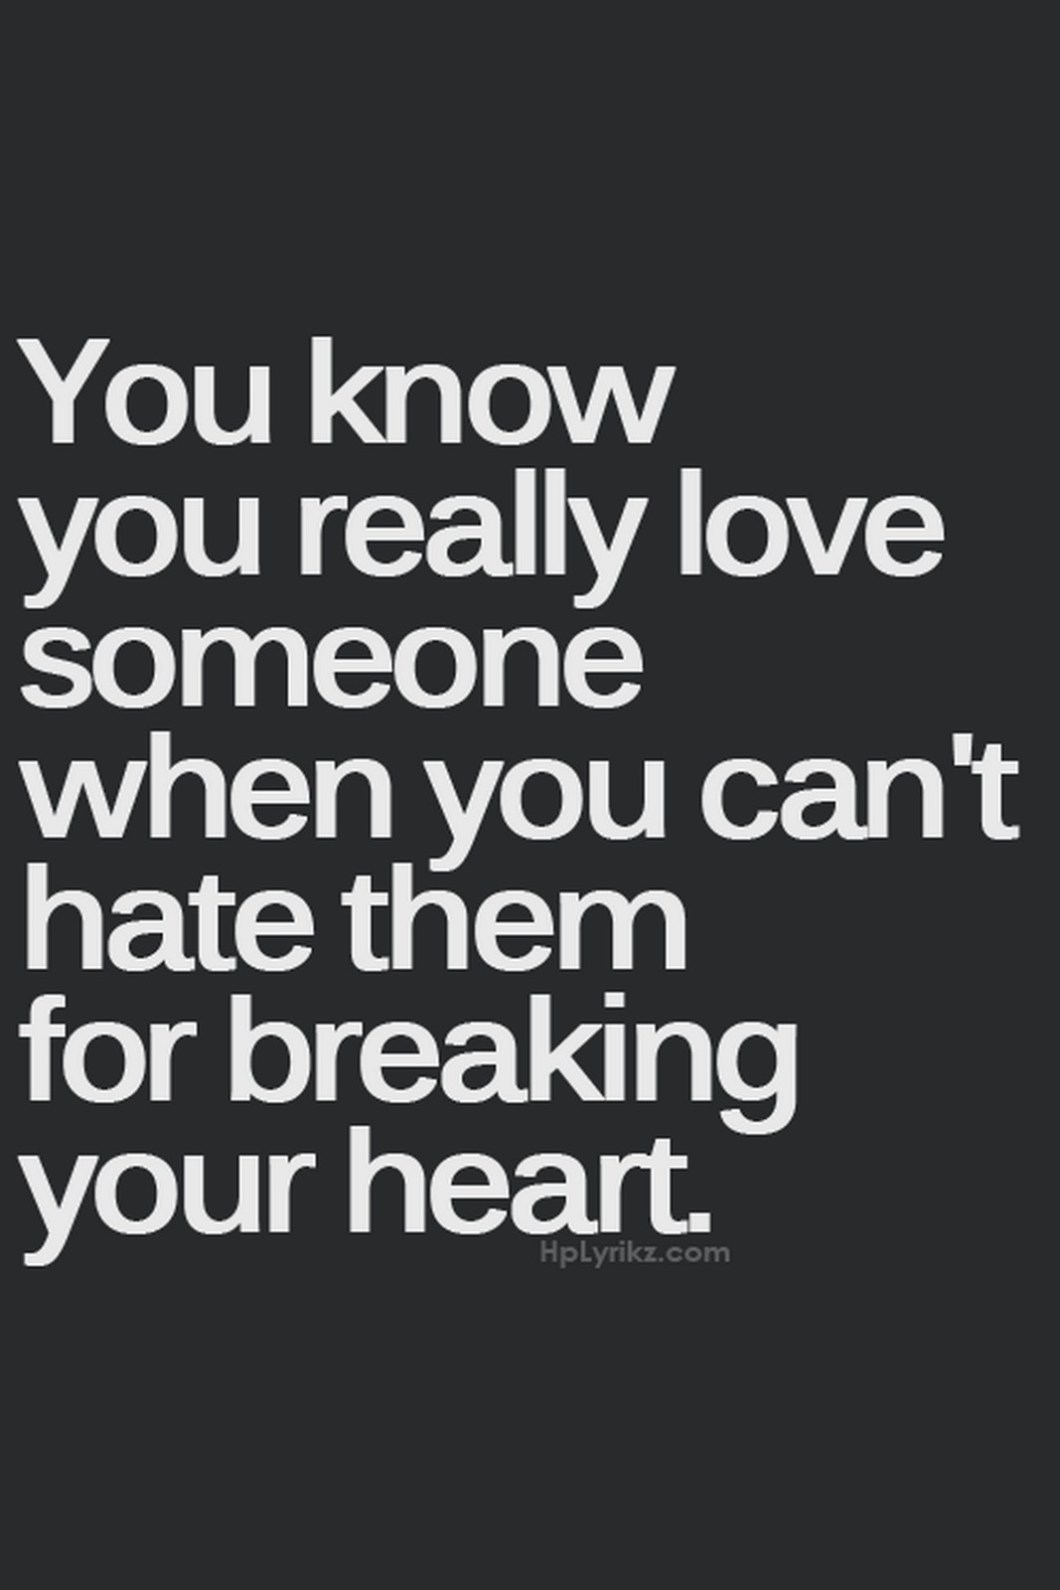 """55 Romantic Quotes - """"You know you really love someone when you can't hate them for breaking your heart."""""""